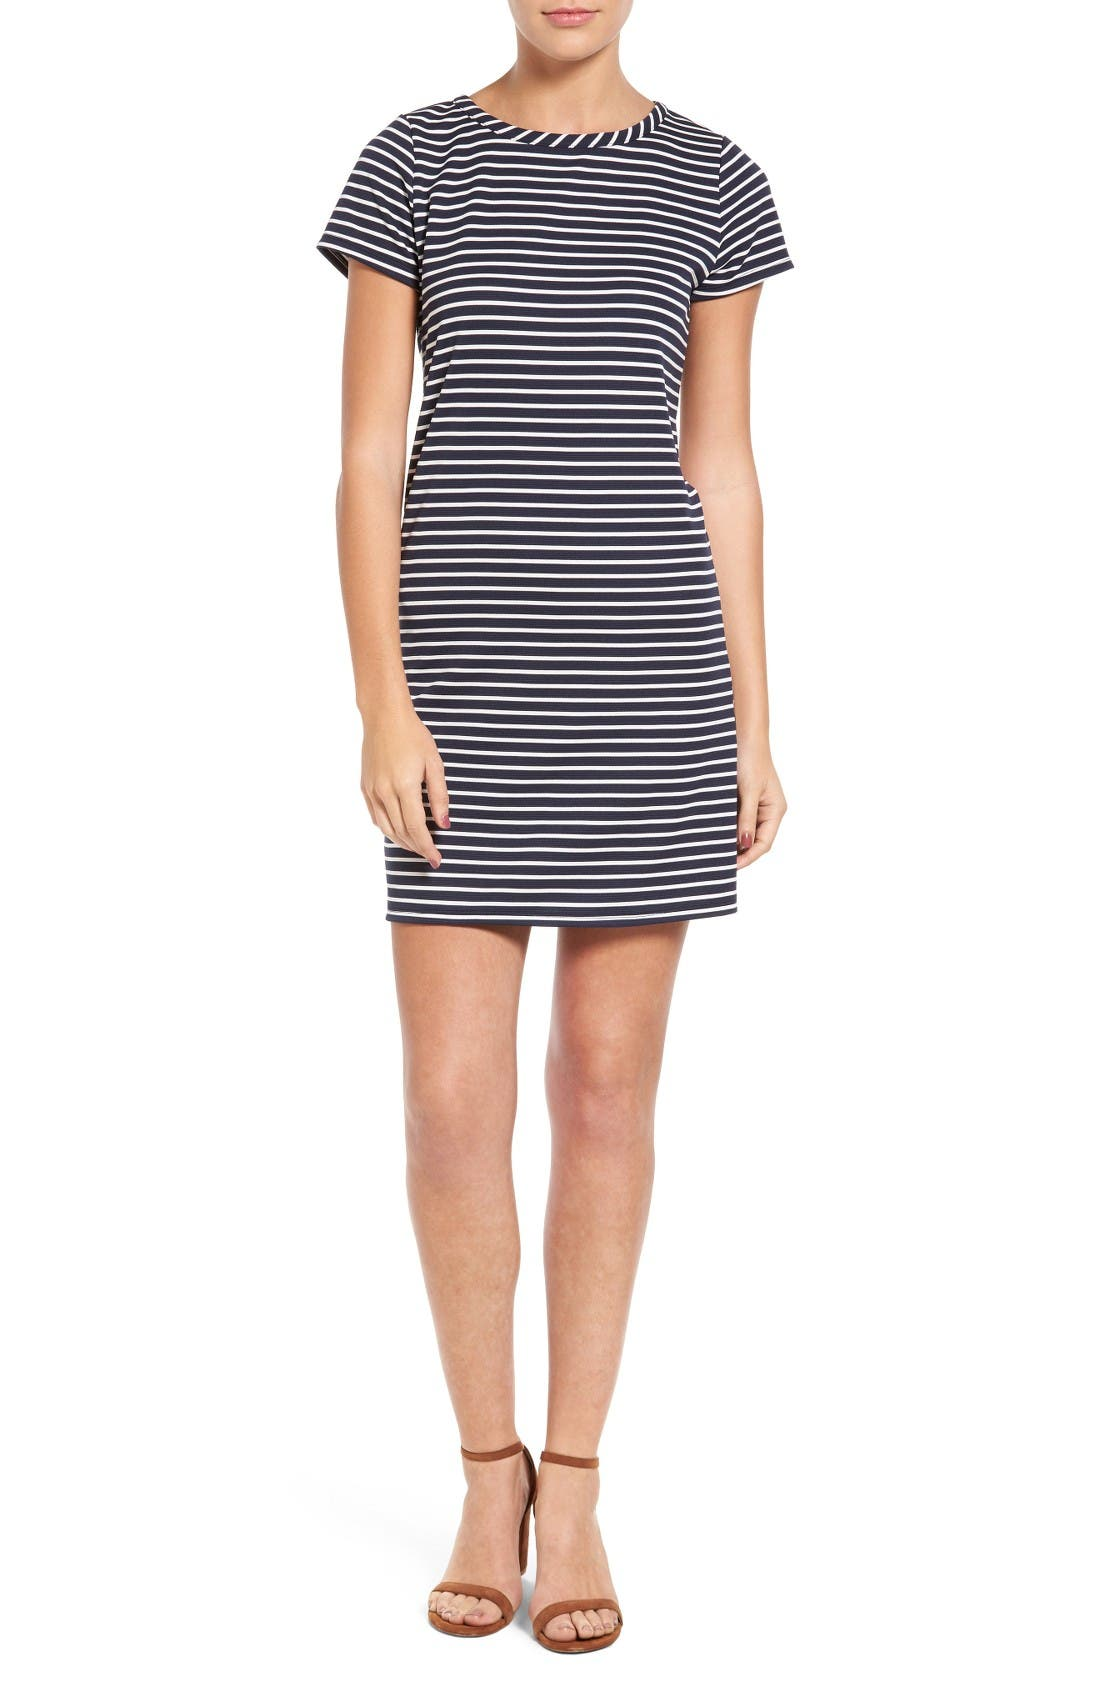 Alternate Image 1 Selected - Loveappella Stripe Ottoman Shift Dress (Petite)